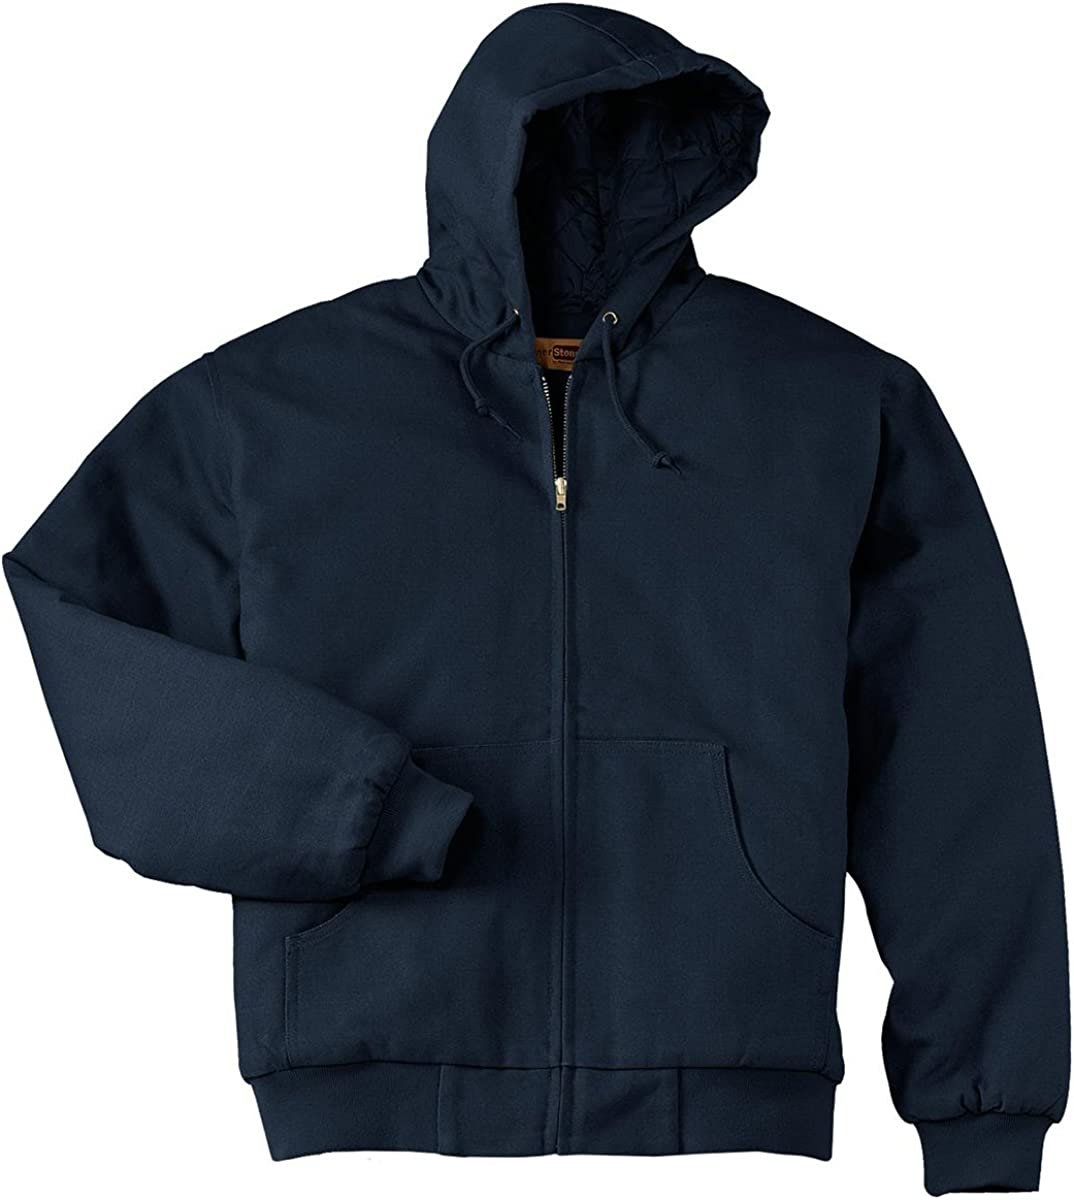 Port Authority Cornerstone Men's Big and Tall Hooded Drawcord Work Jacket